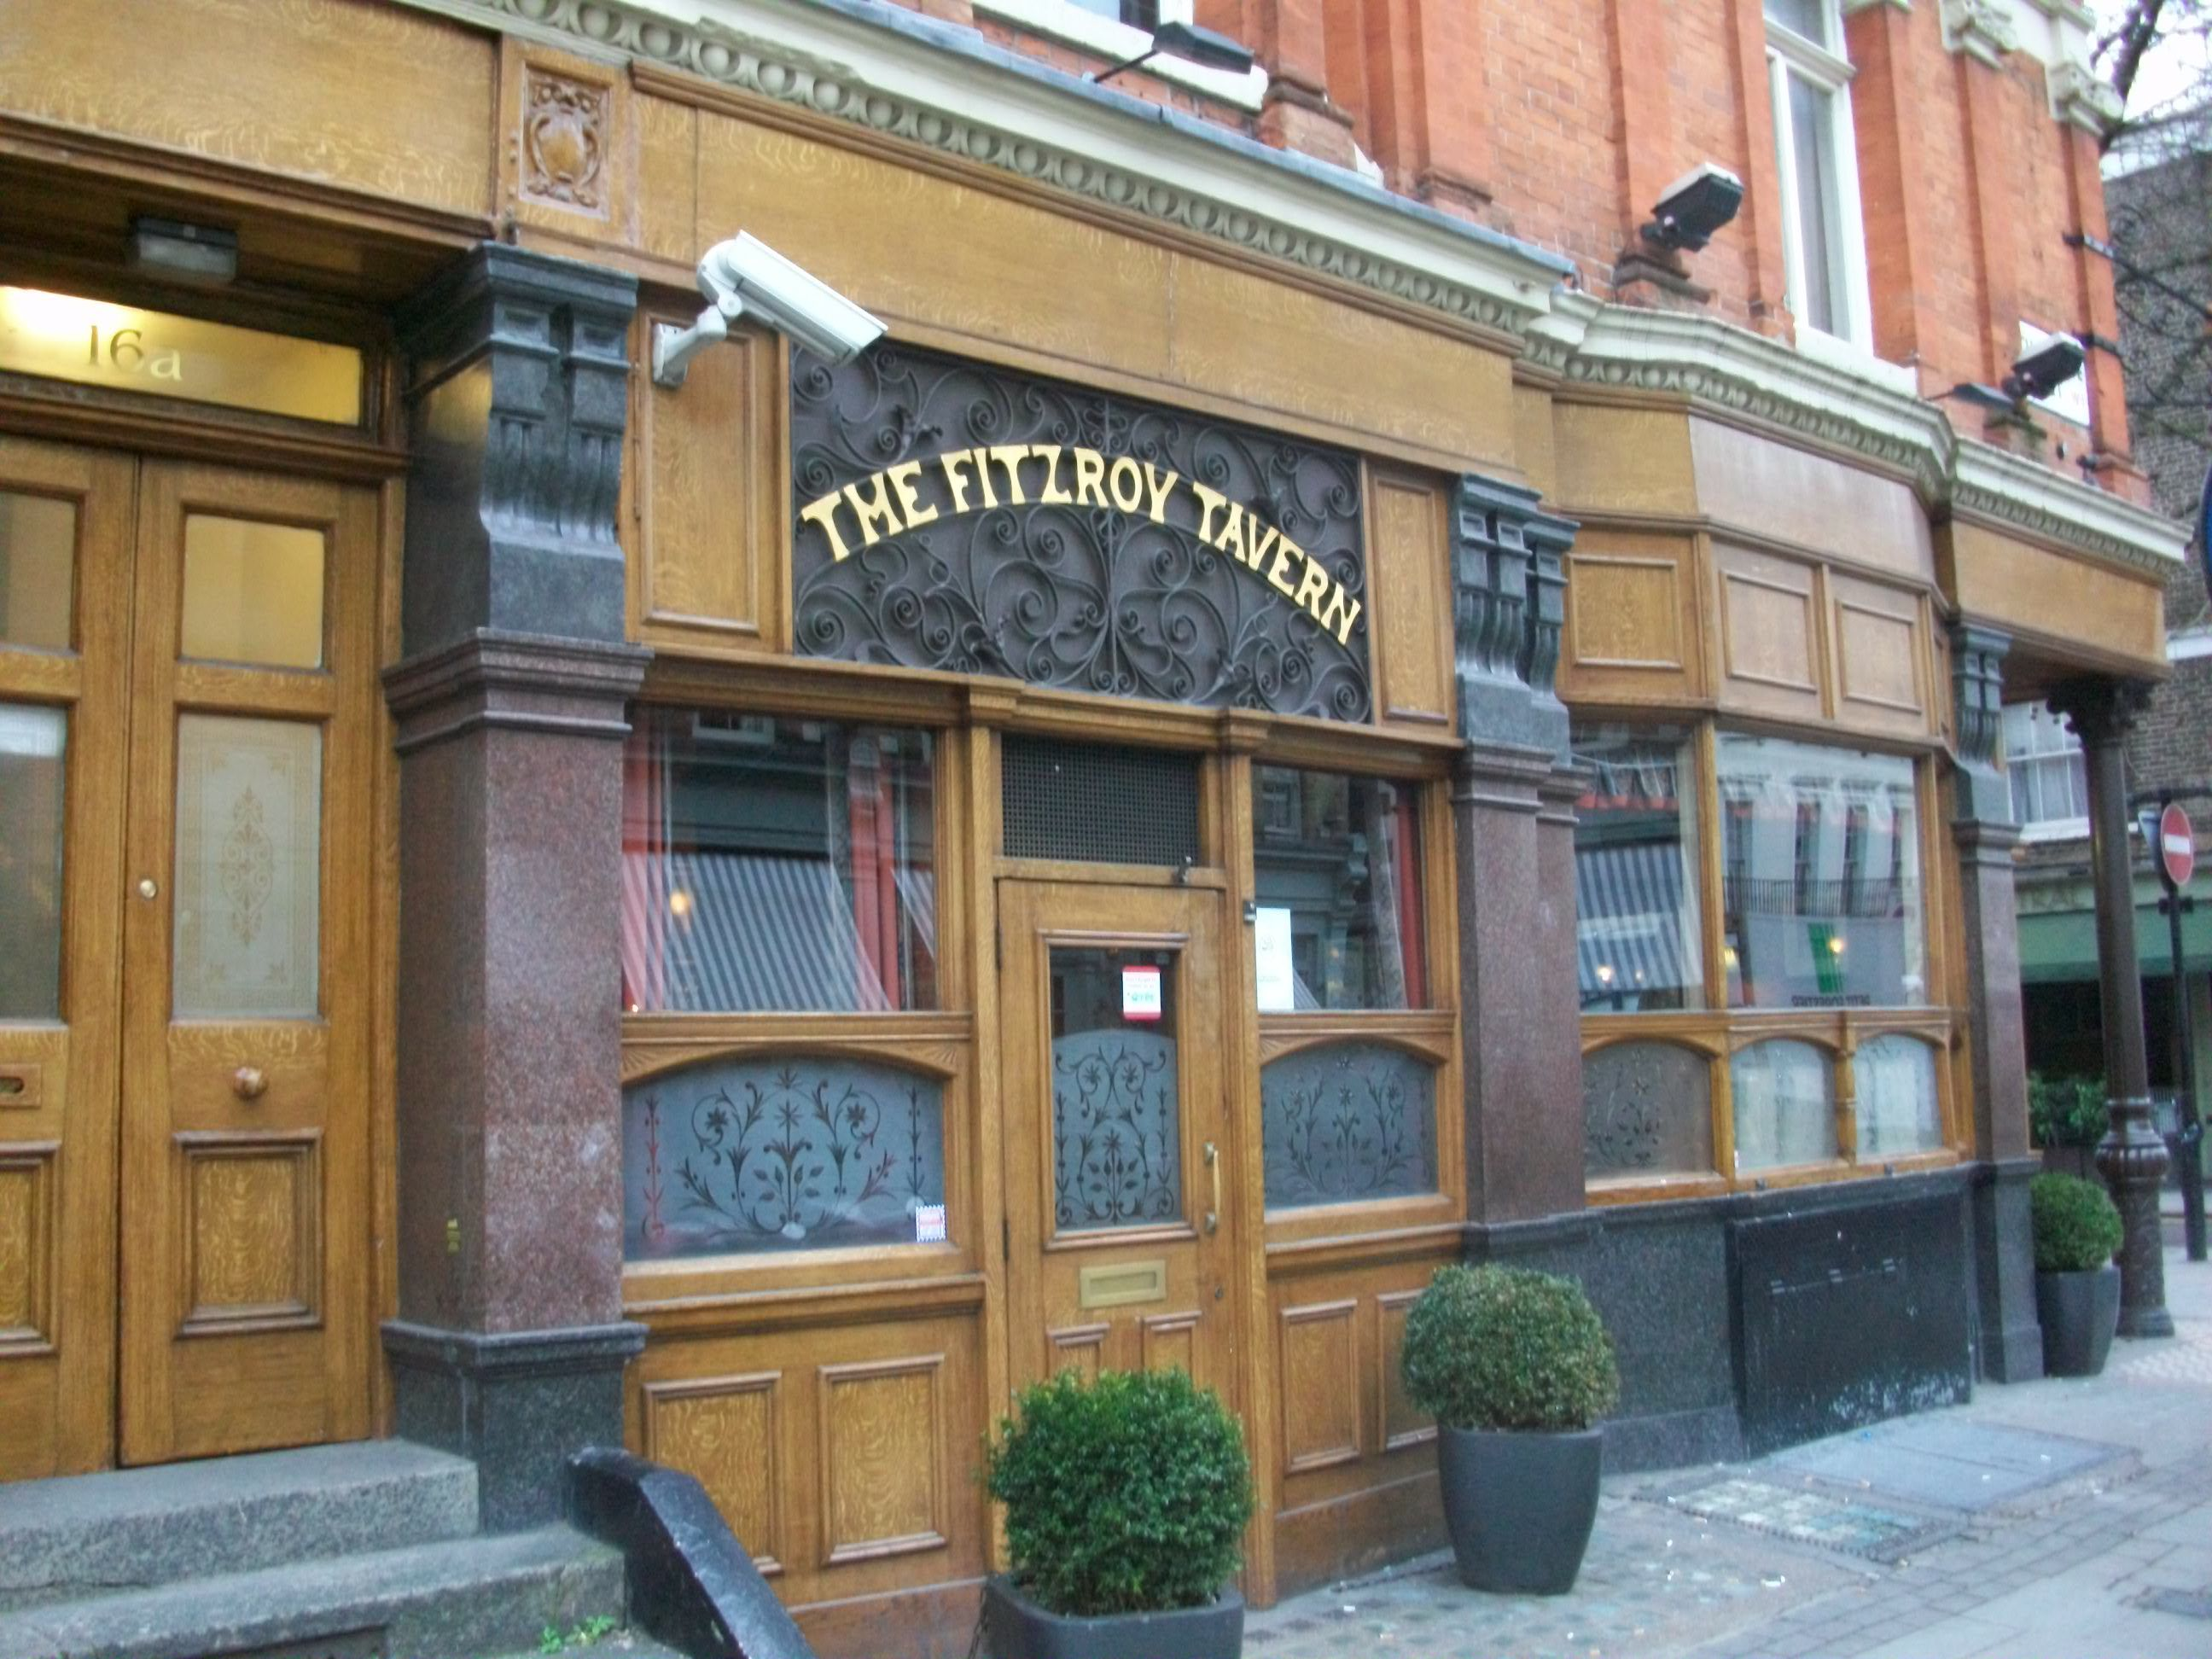 The Fitzroy Tavern in Charlotte Street. In the 1940s an Australian theatre group donated food for underprivileged children in London.